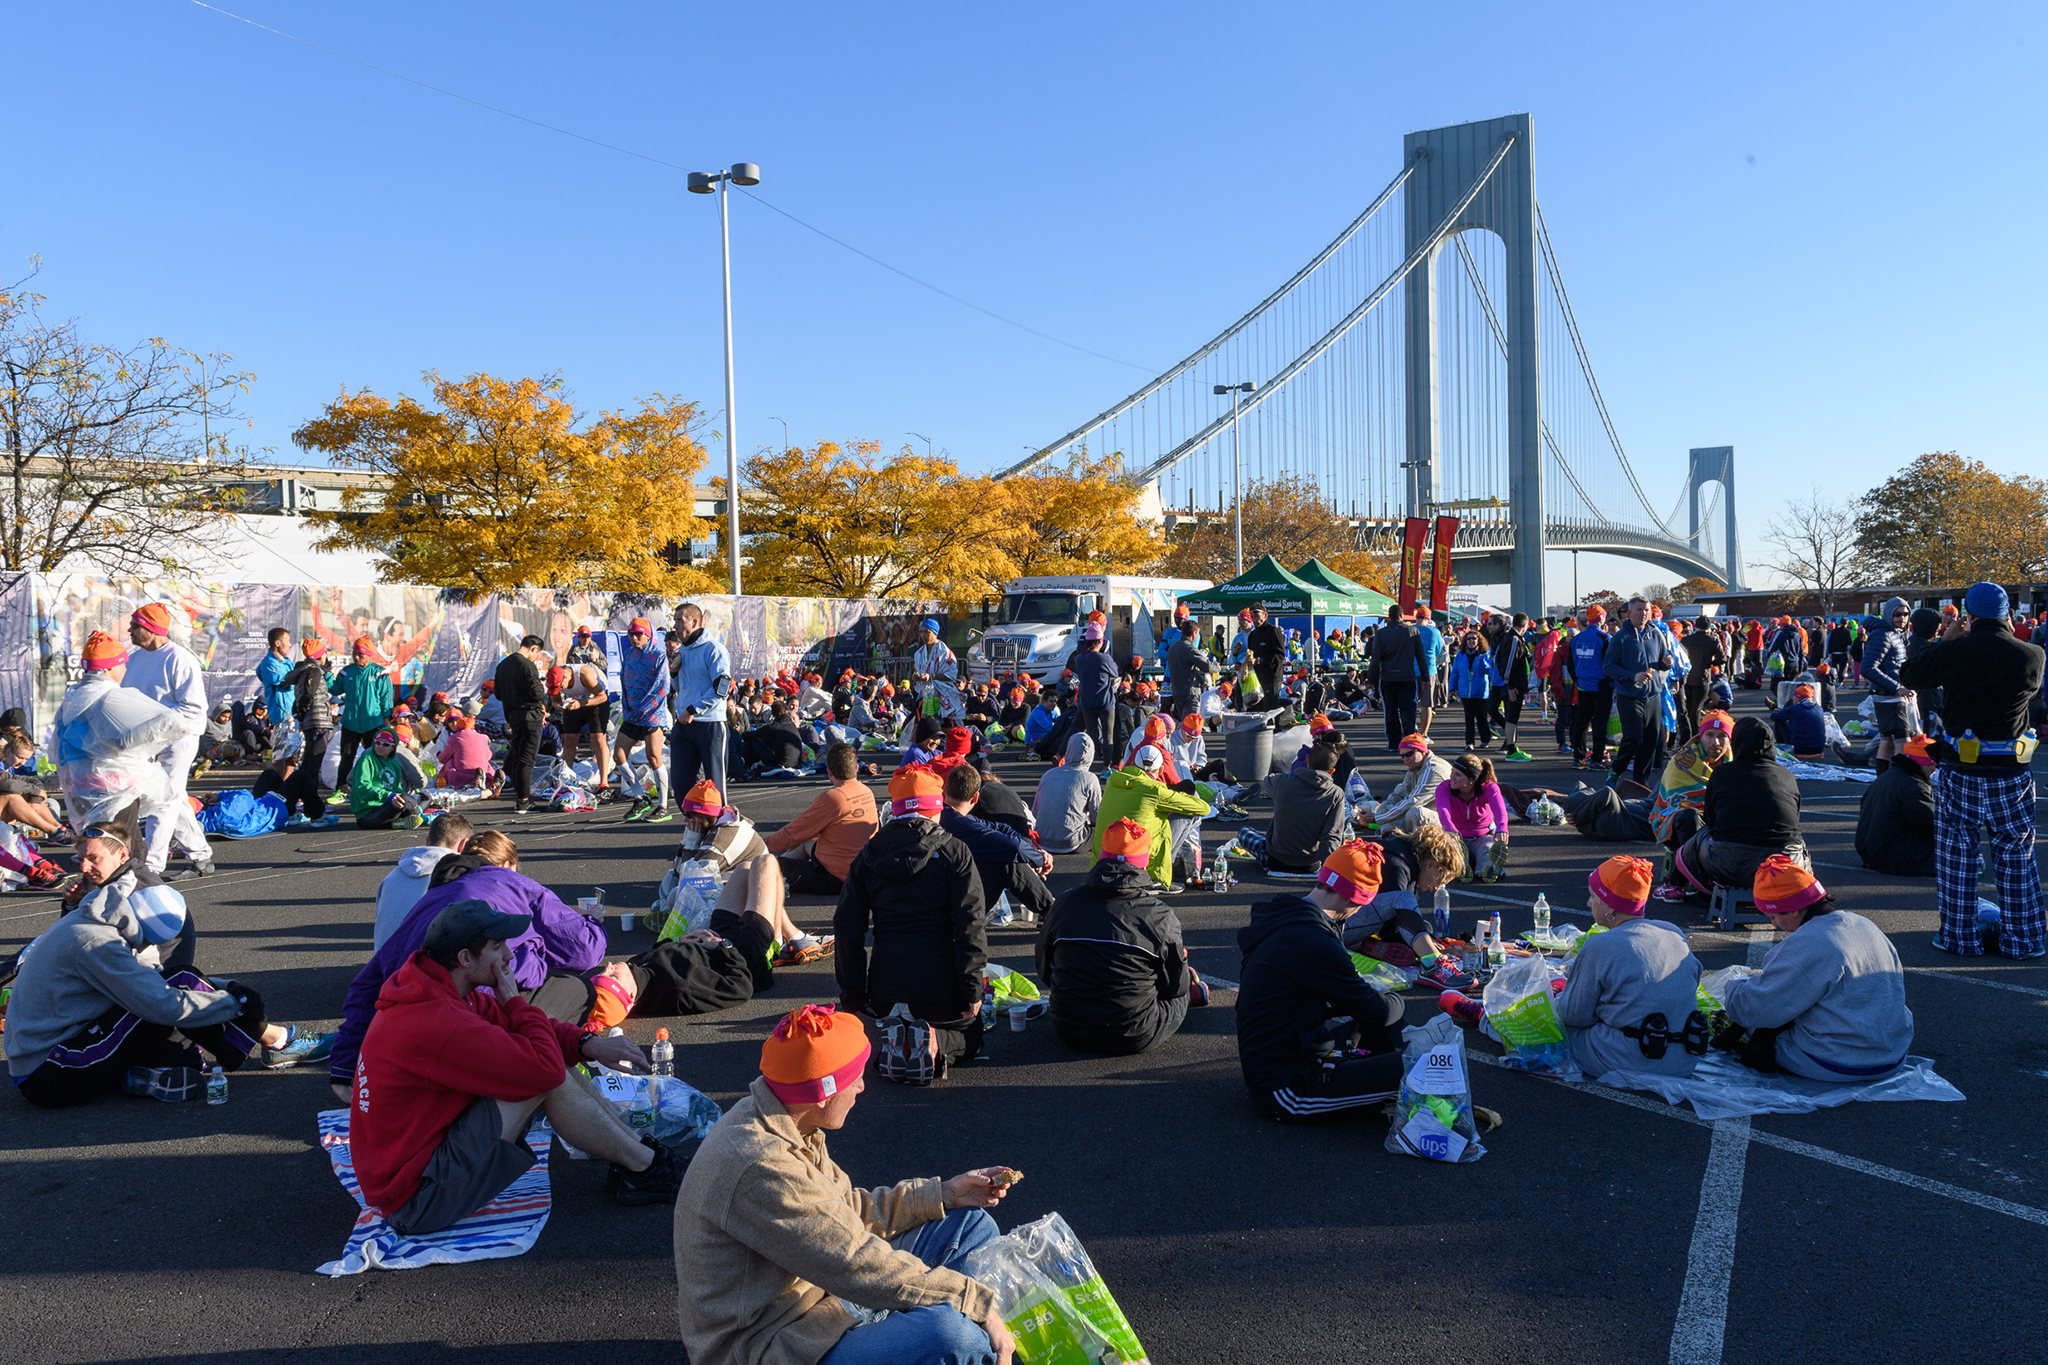 NYC Marathon 2016 photos